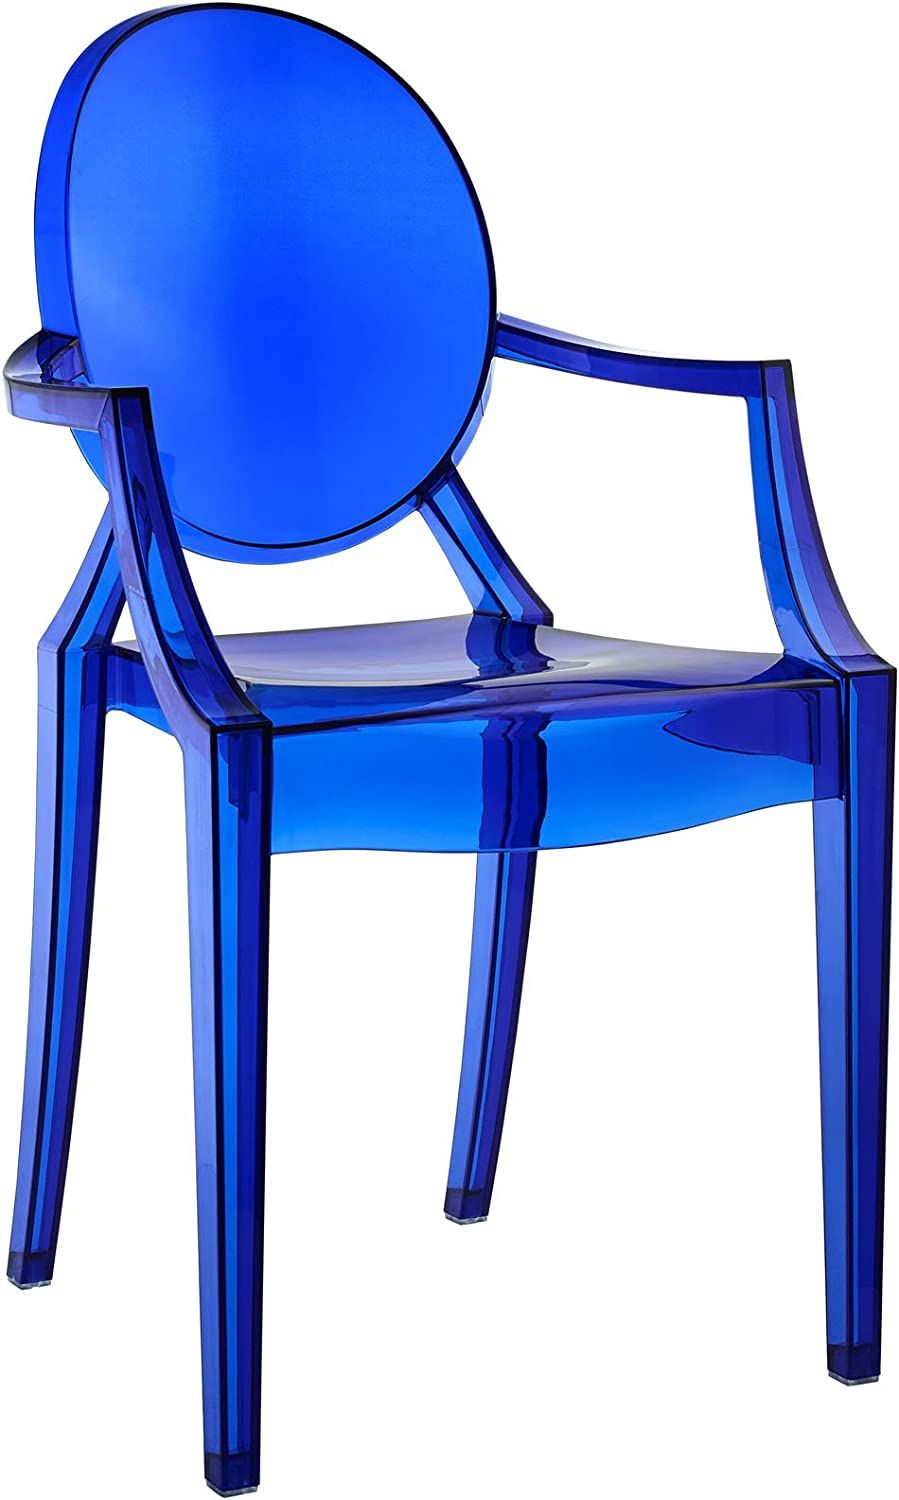 Modway Casper Modern Acrylic Stacking Kitchen and Dining Room Arm Chair in Blue - Fully Assembled